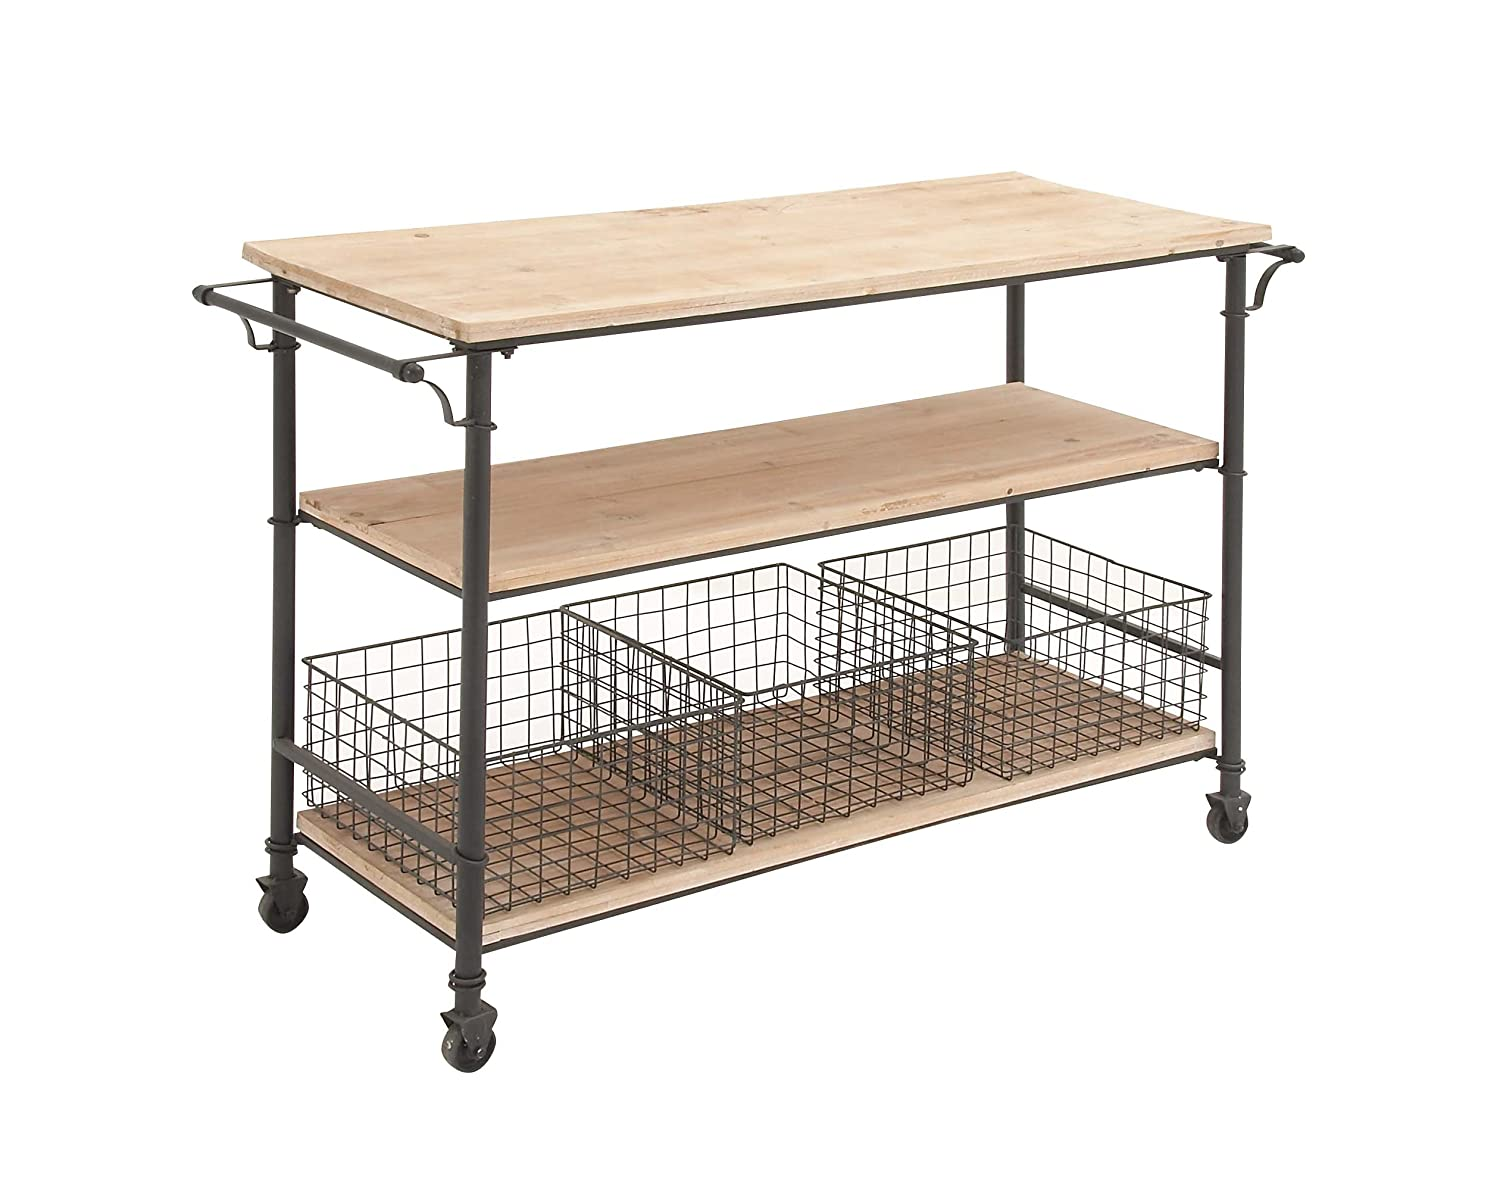 Deco 79 50203 Industrial Metal Wood Table Rolling Cart With Drawer Baskets 48 X 32